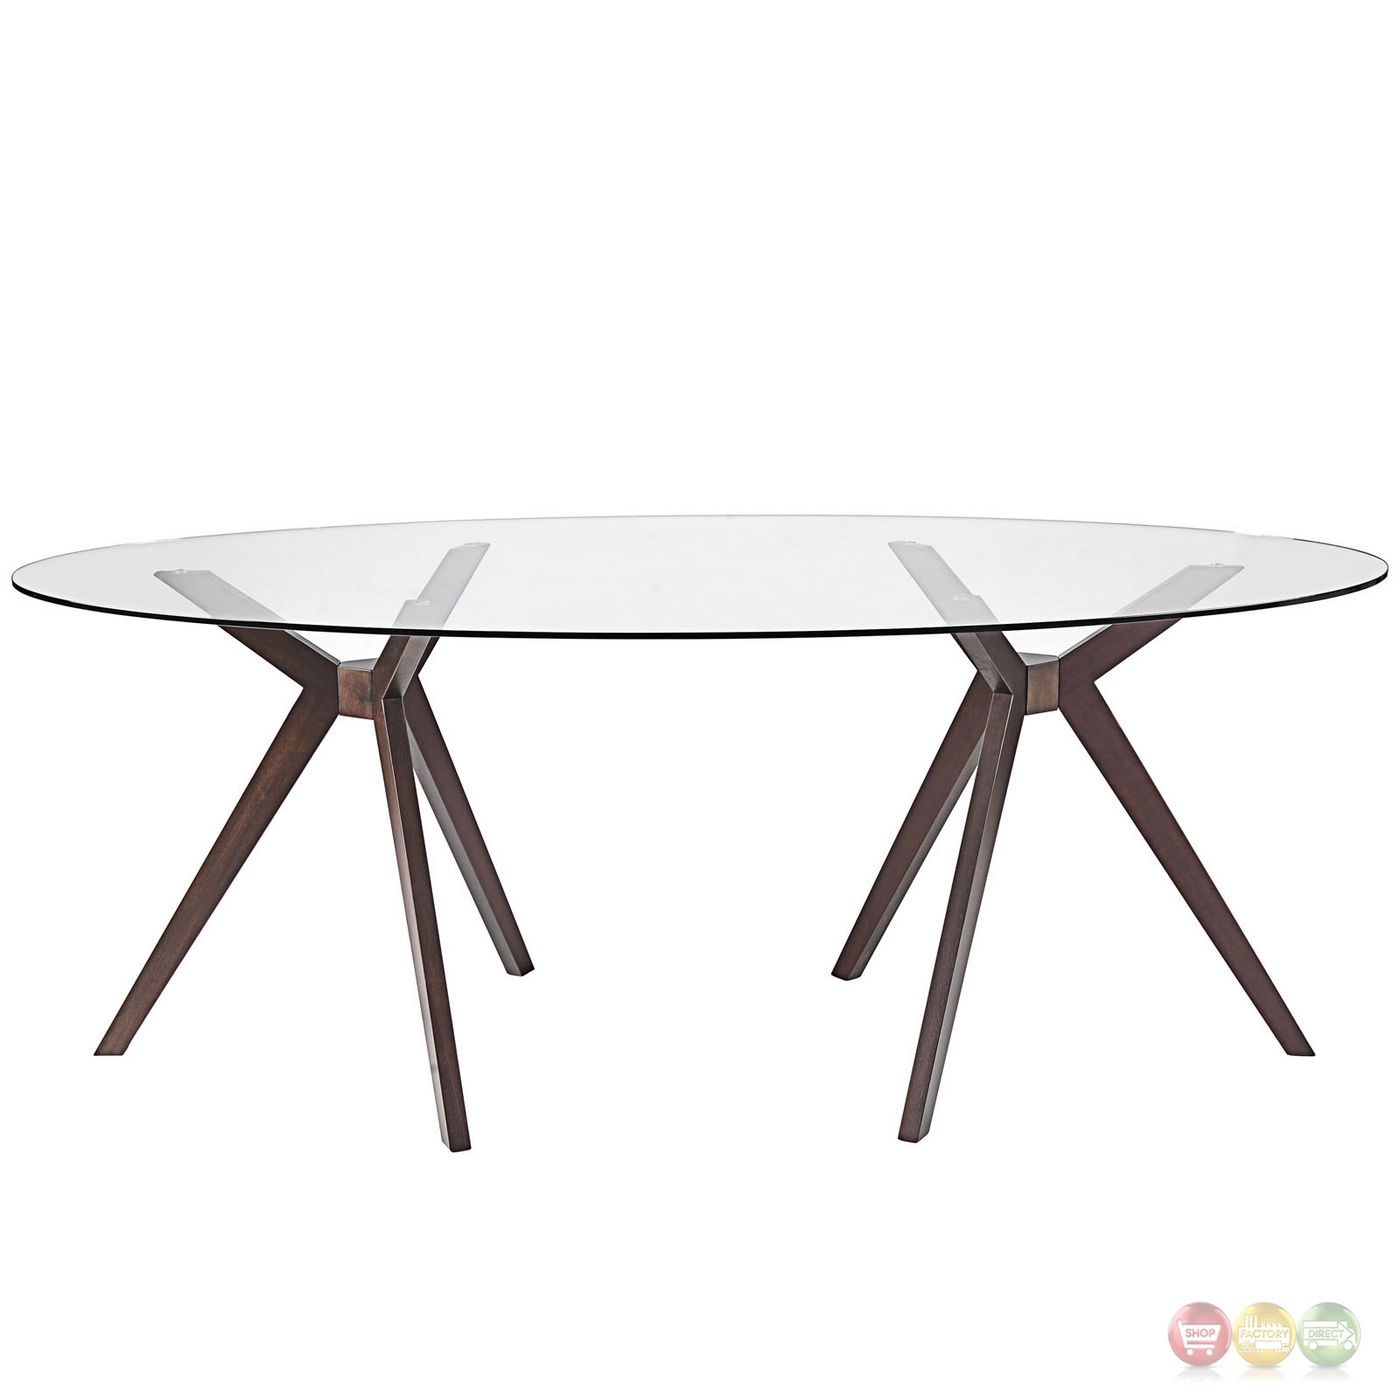 79 Quot Glass Top Dining Table With Double Tripod Wood Base Walnut